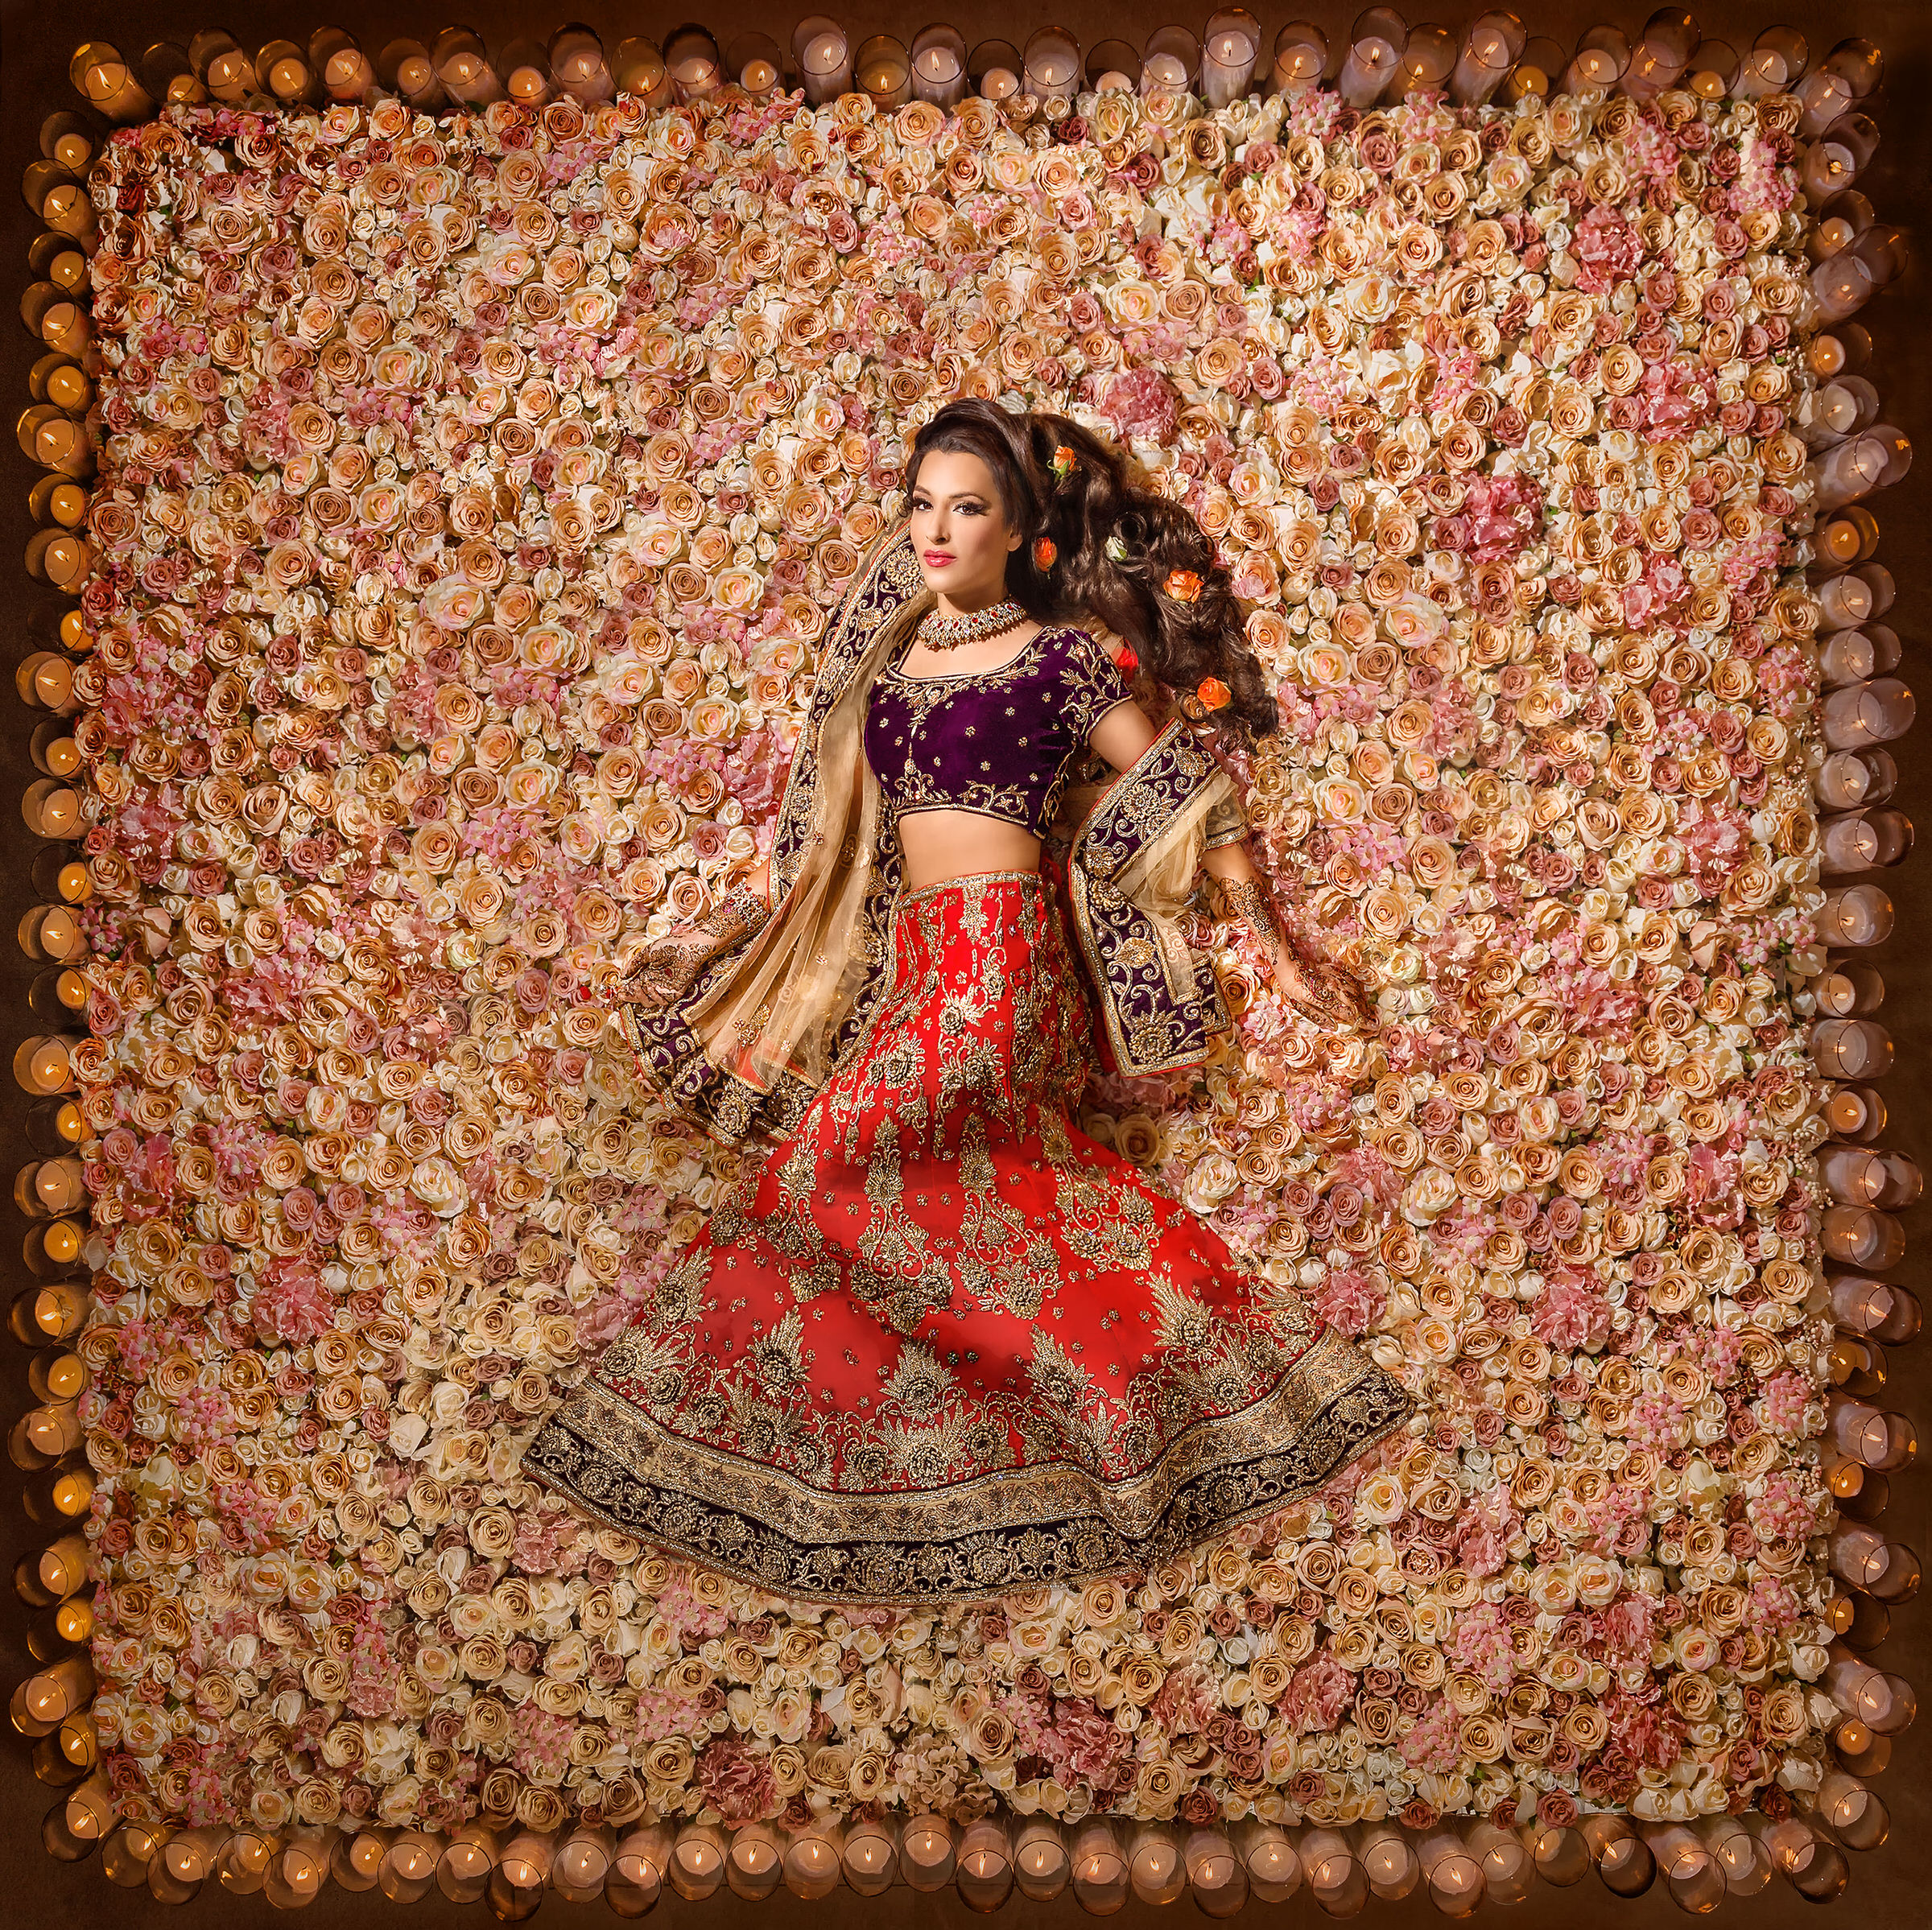 indian-bride-against-gigantic-bed-of-roses-with-border-of-candles-eye-jogia-photography